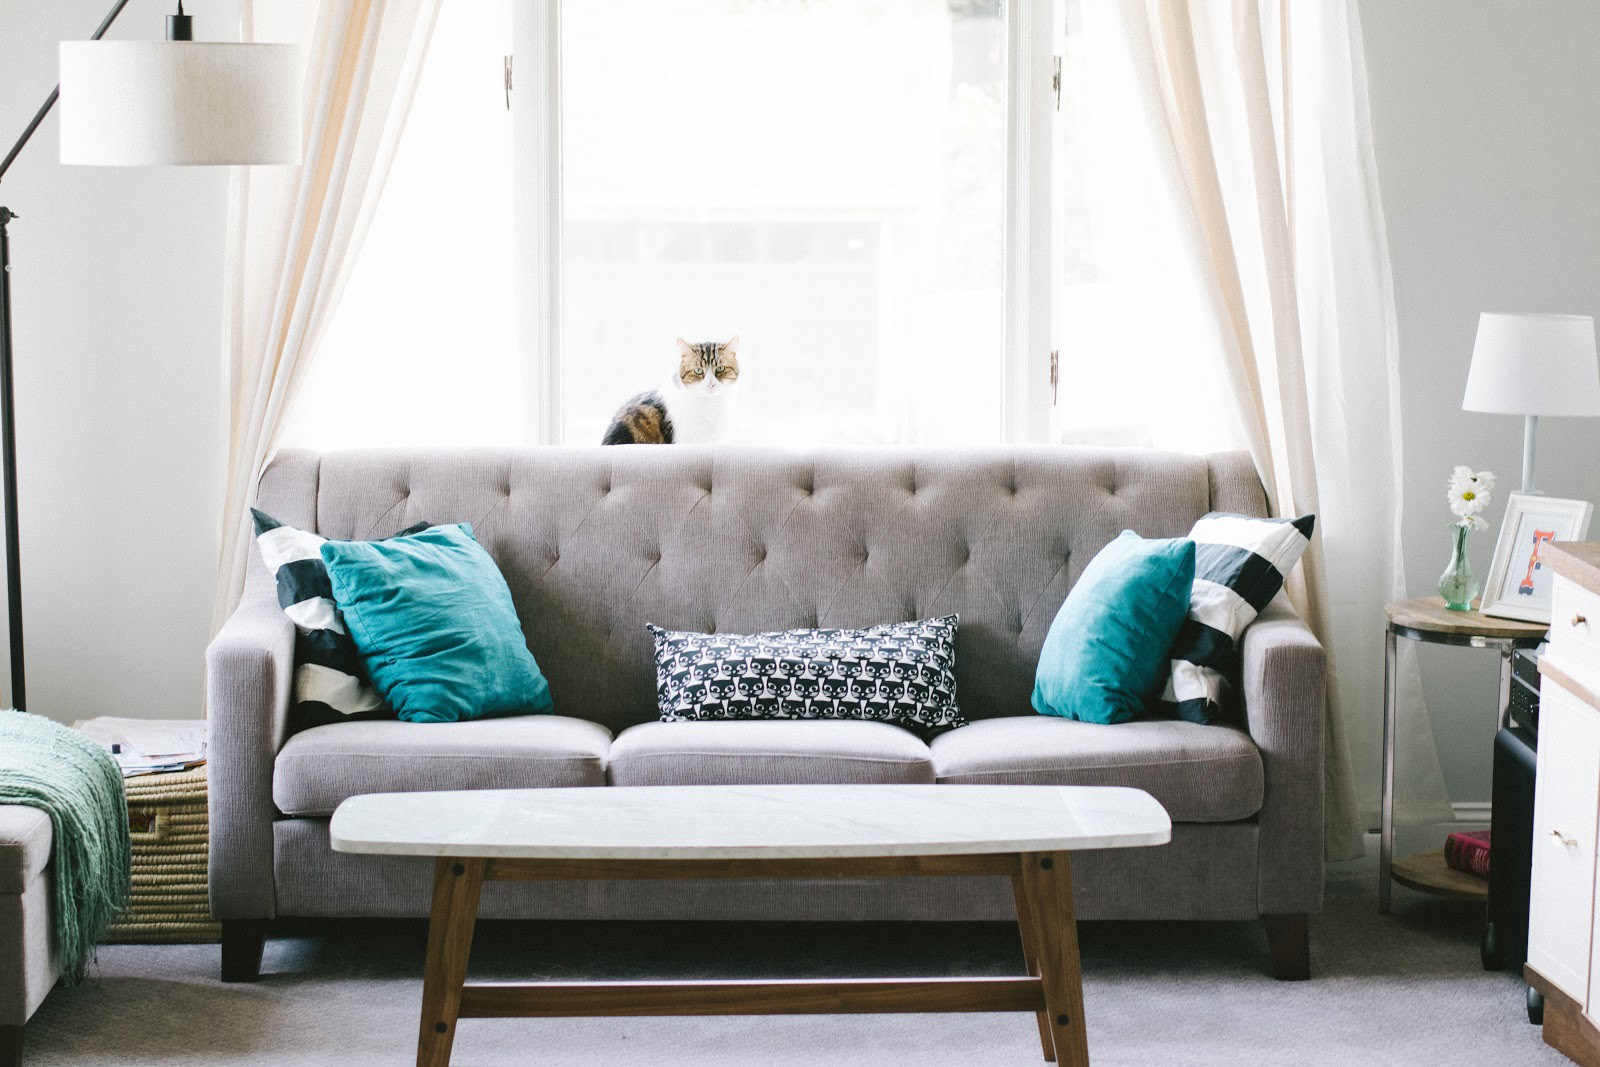 The Furnish Furnishing Basics How To Furnish Your Property For Airbnb